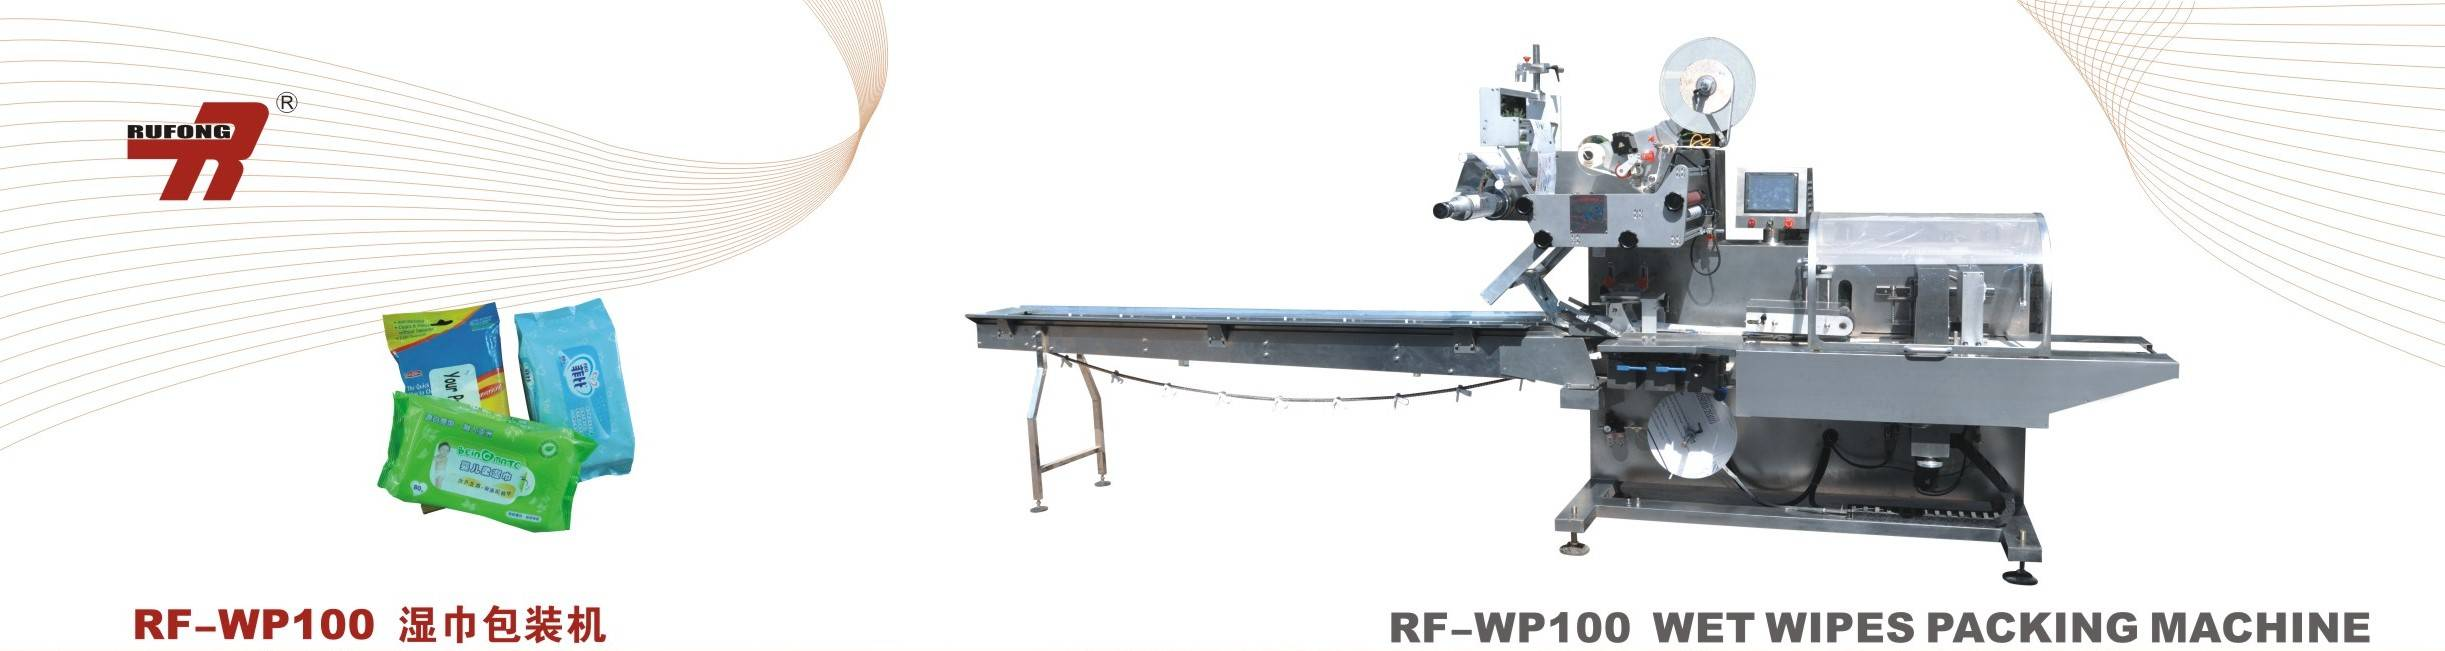 RF-WP100 Wet Wipes Packing Machine